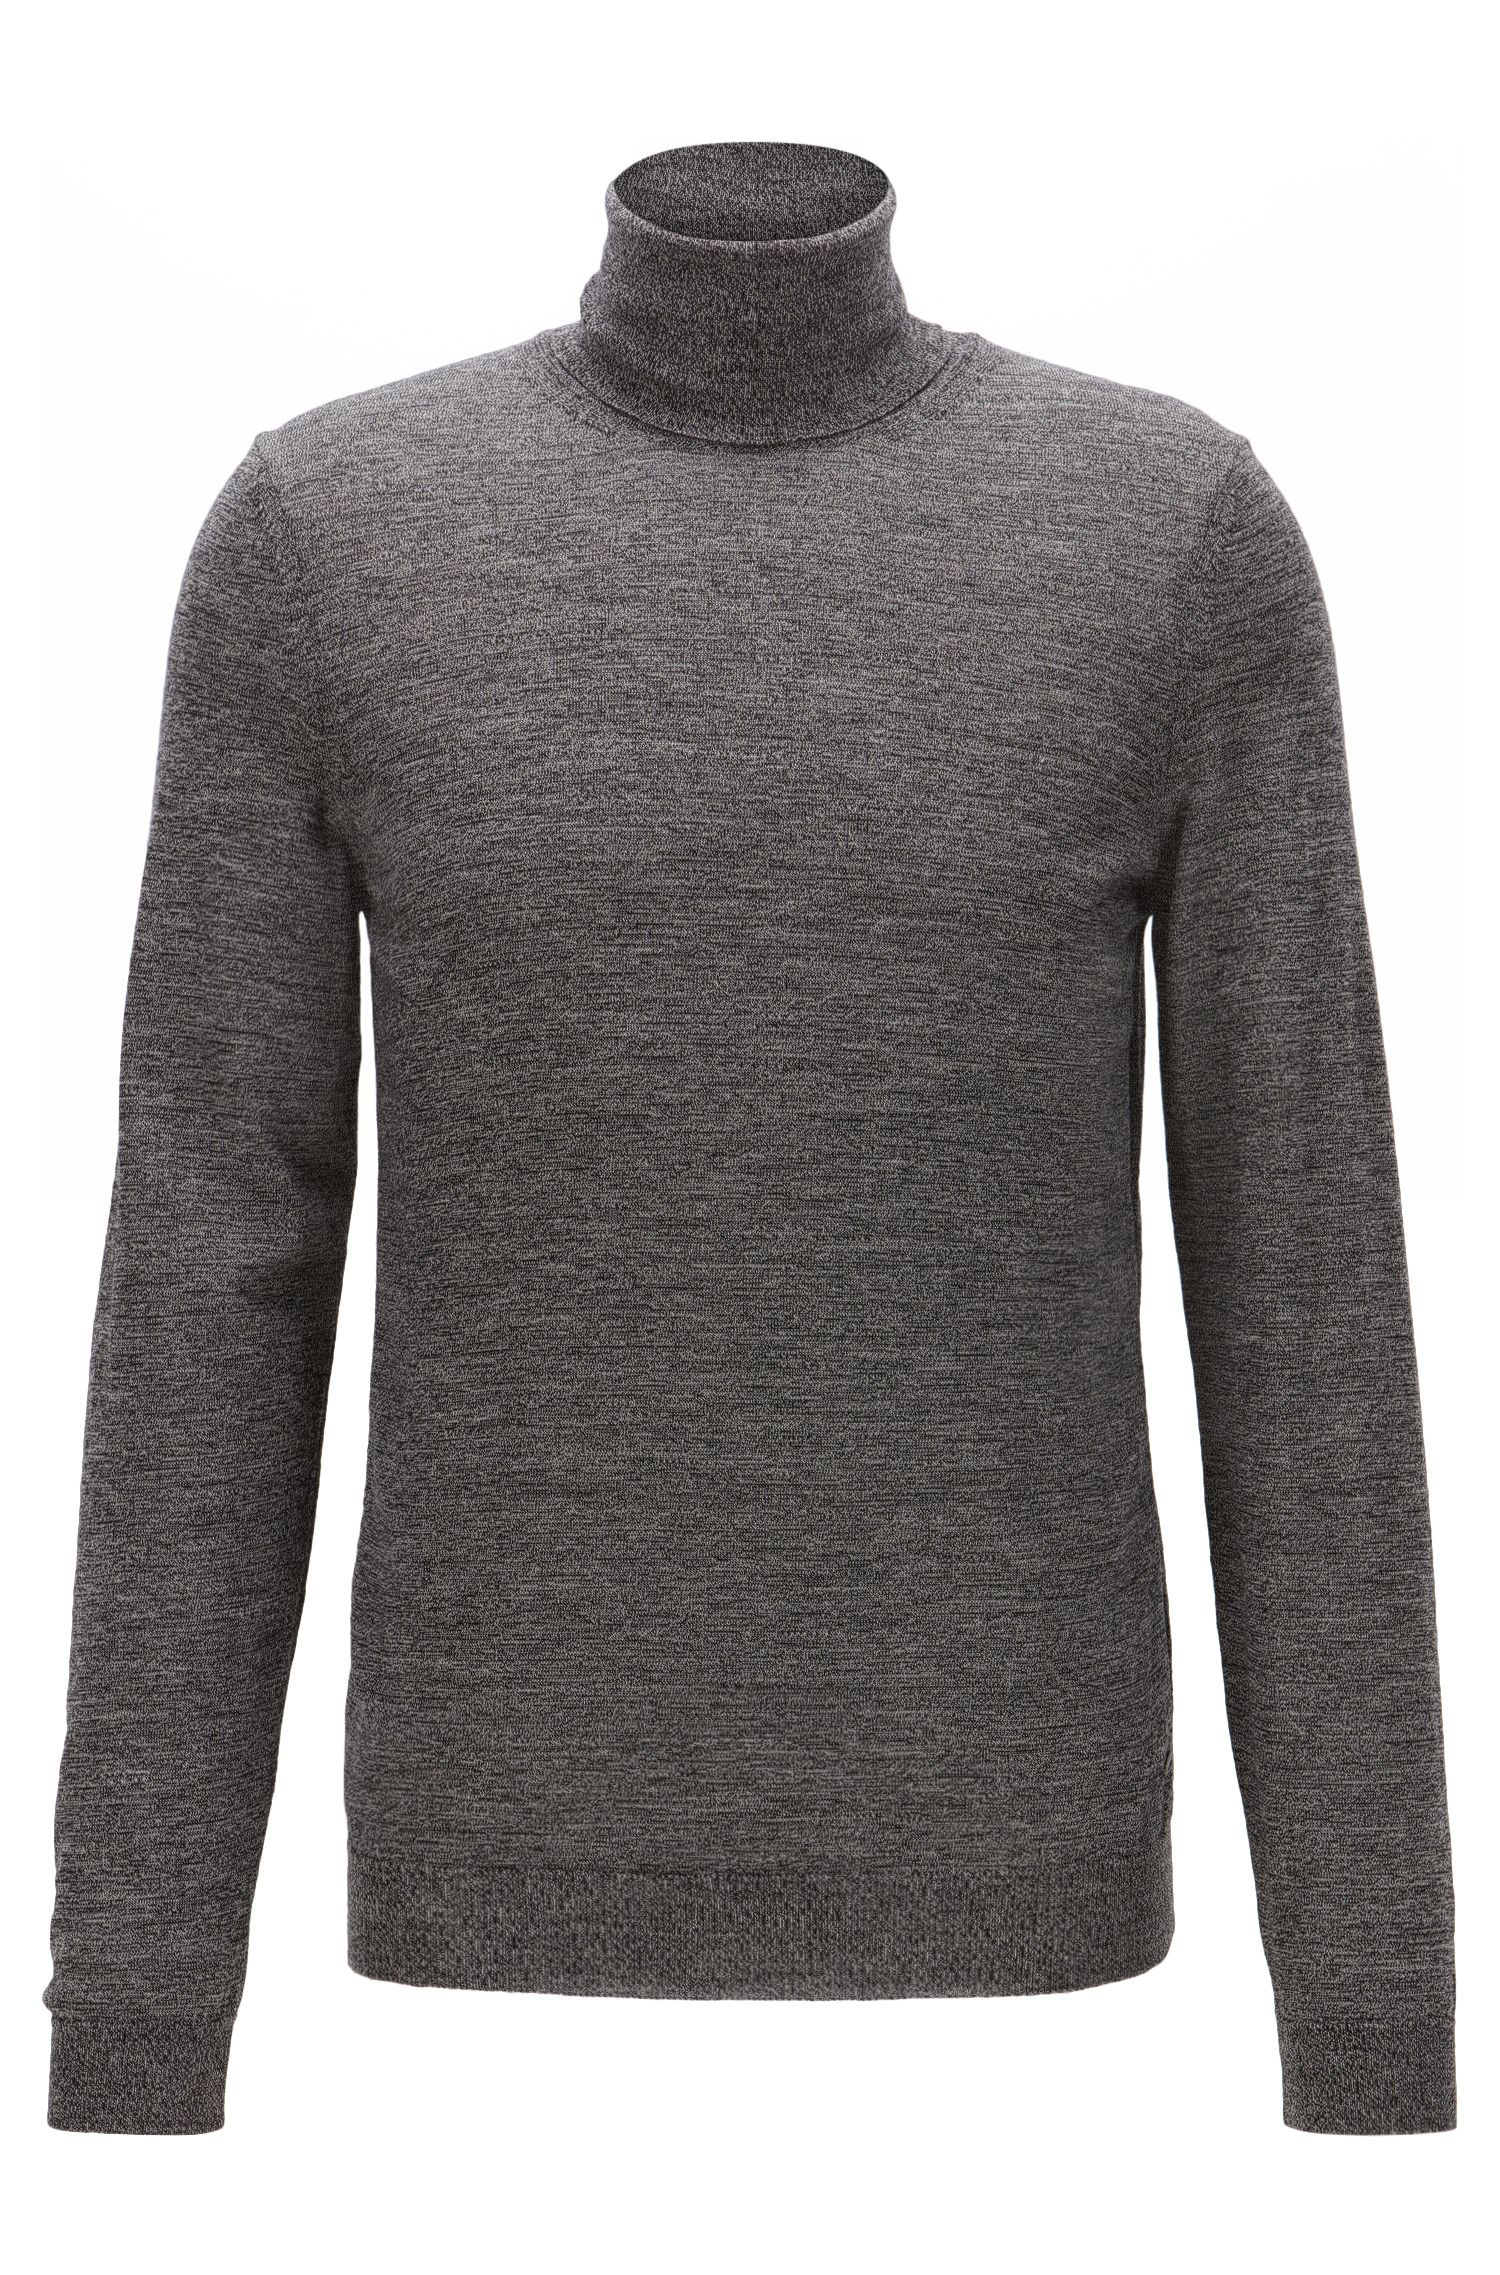 Merino Wool Turtleneck Sweater | Musso N